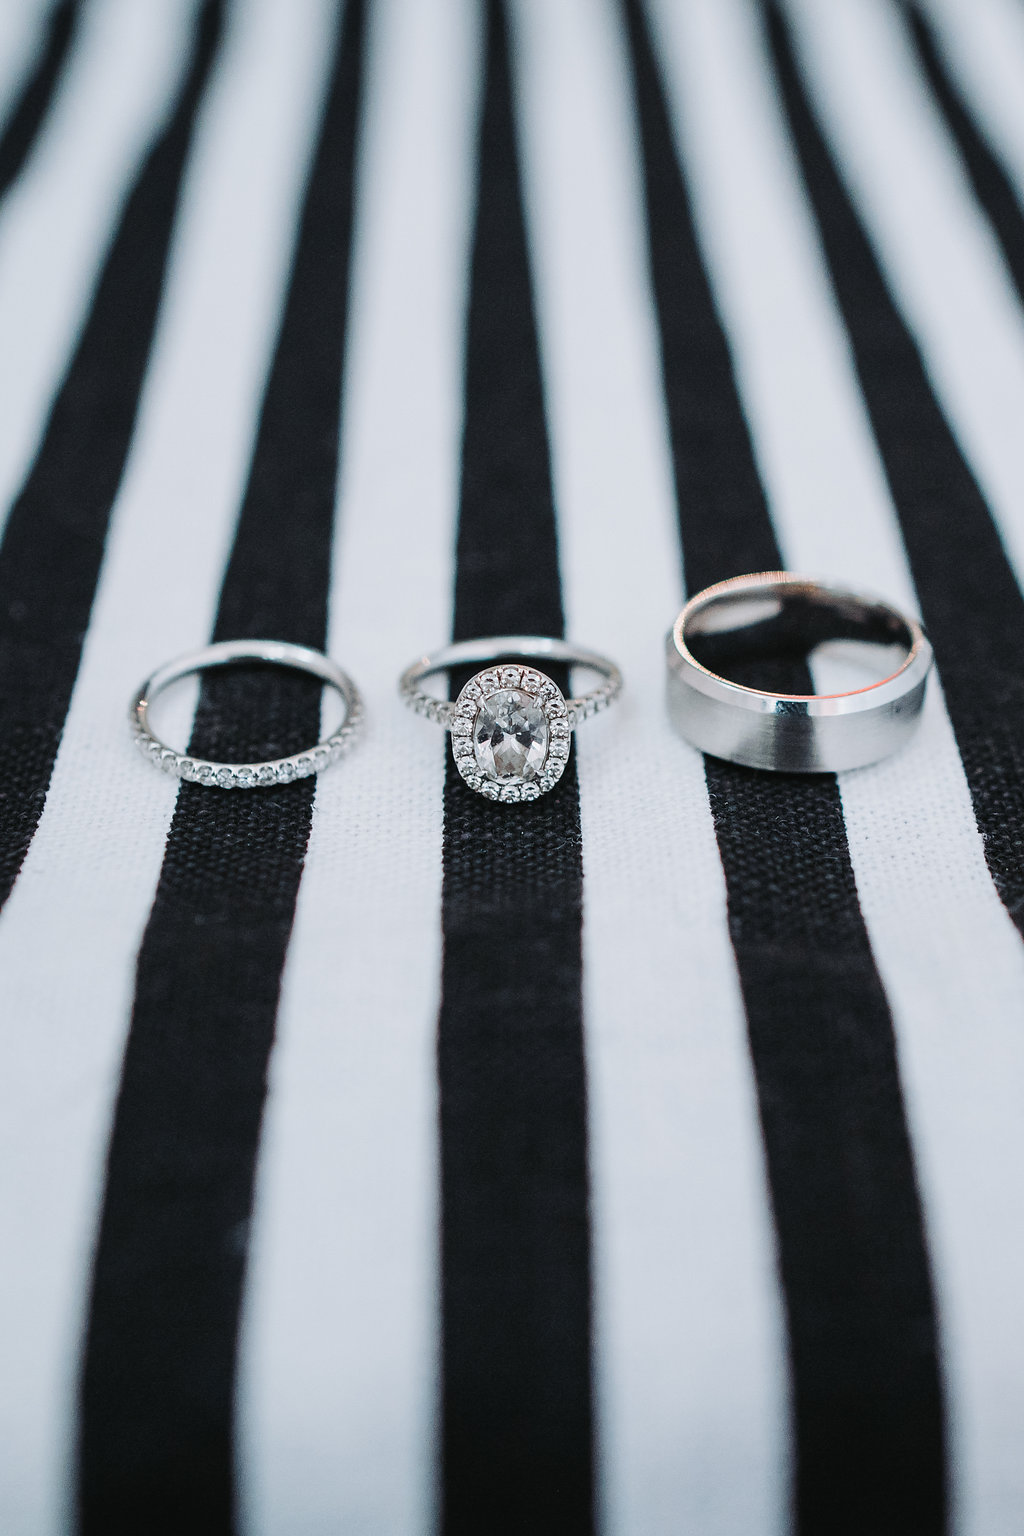 Wedding Band, Engagement Ring on Black and White Linen